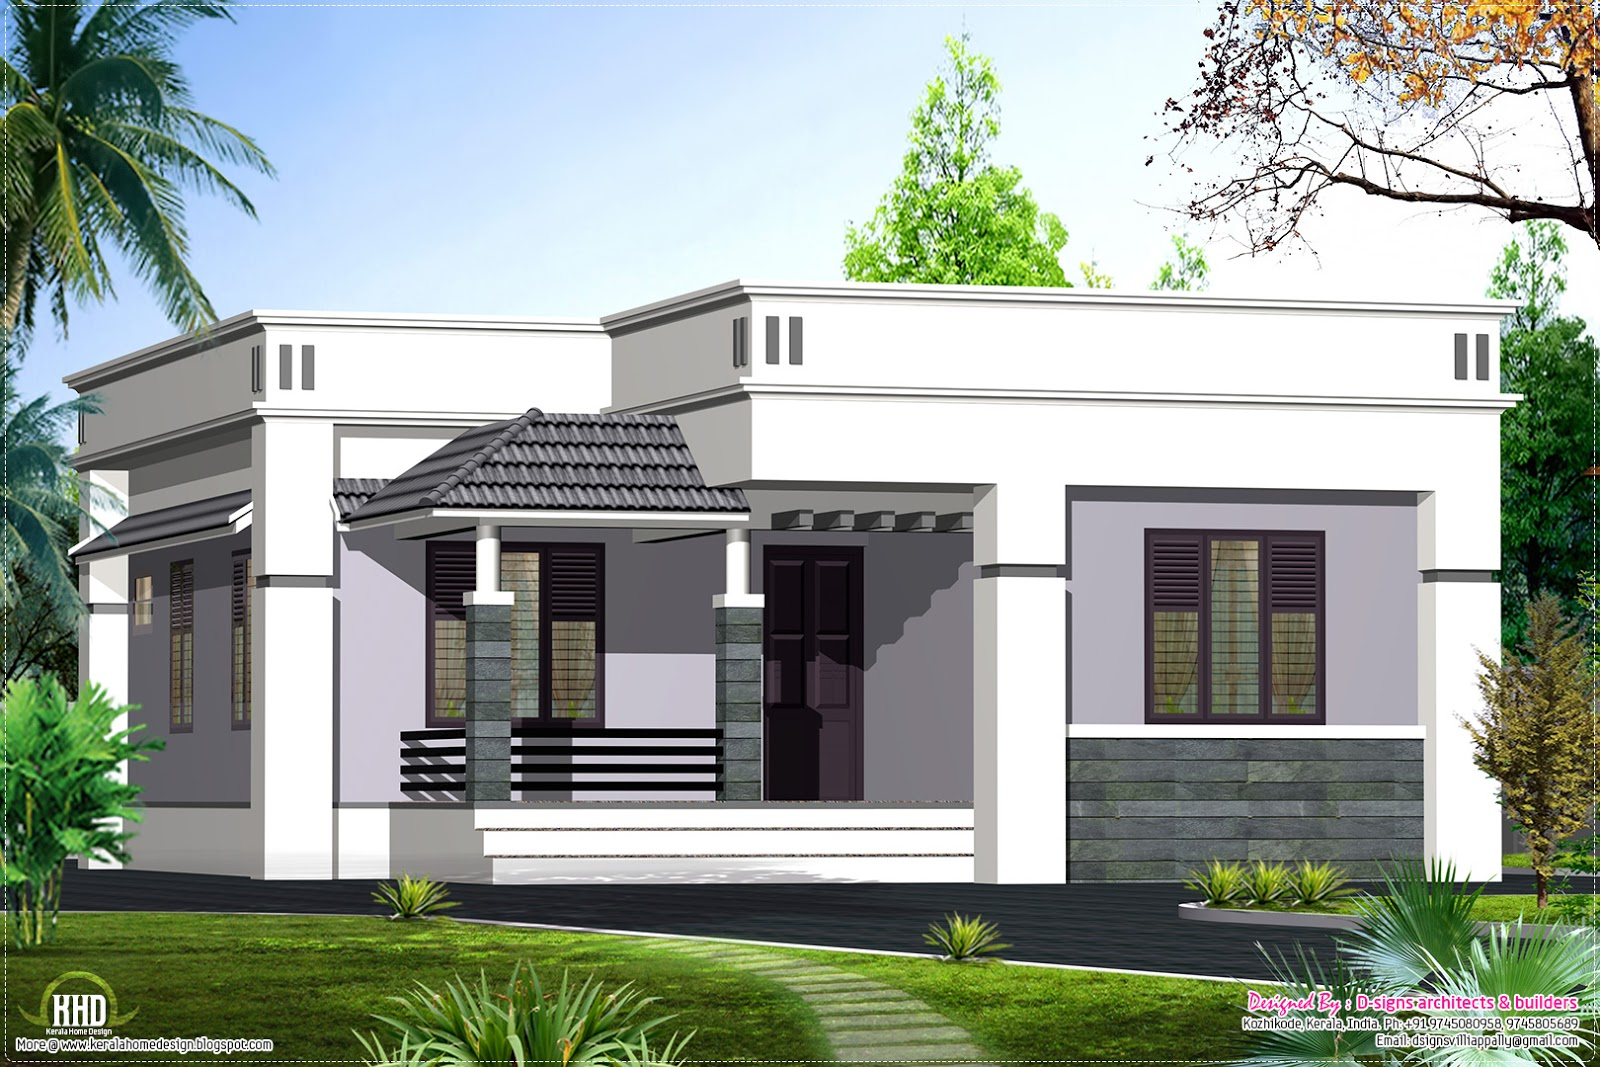 This Article Is Filed Under: Small Cottage Designs, Small Home Design,  Small House Design Plans, Small House Design Inside, Small House  Architecture